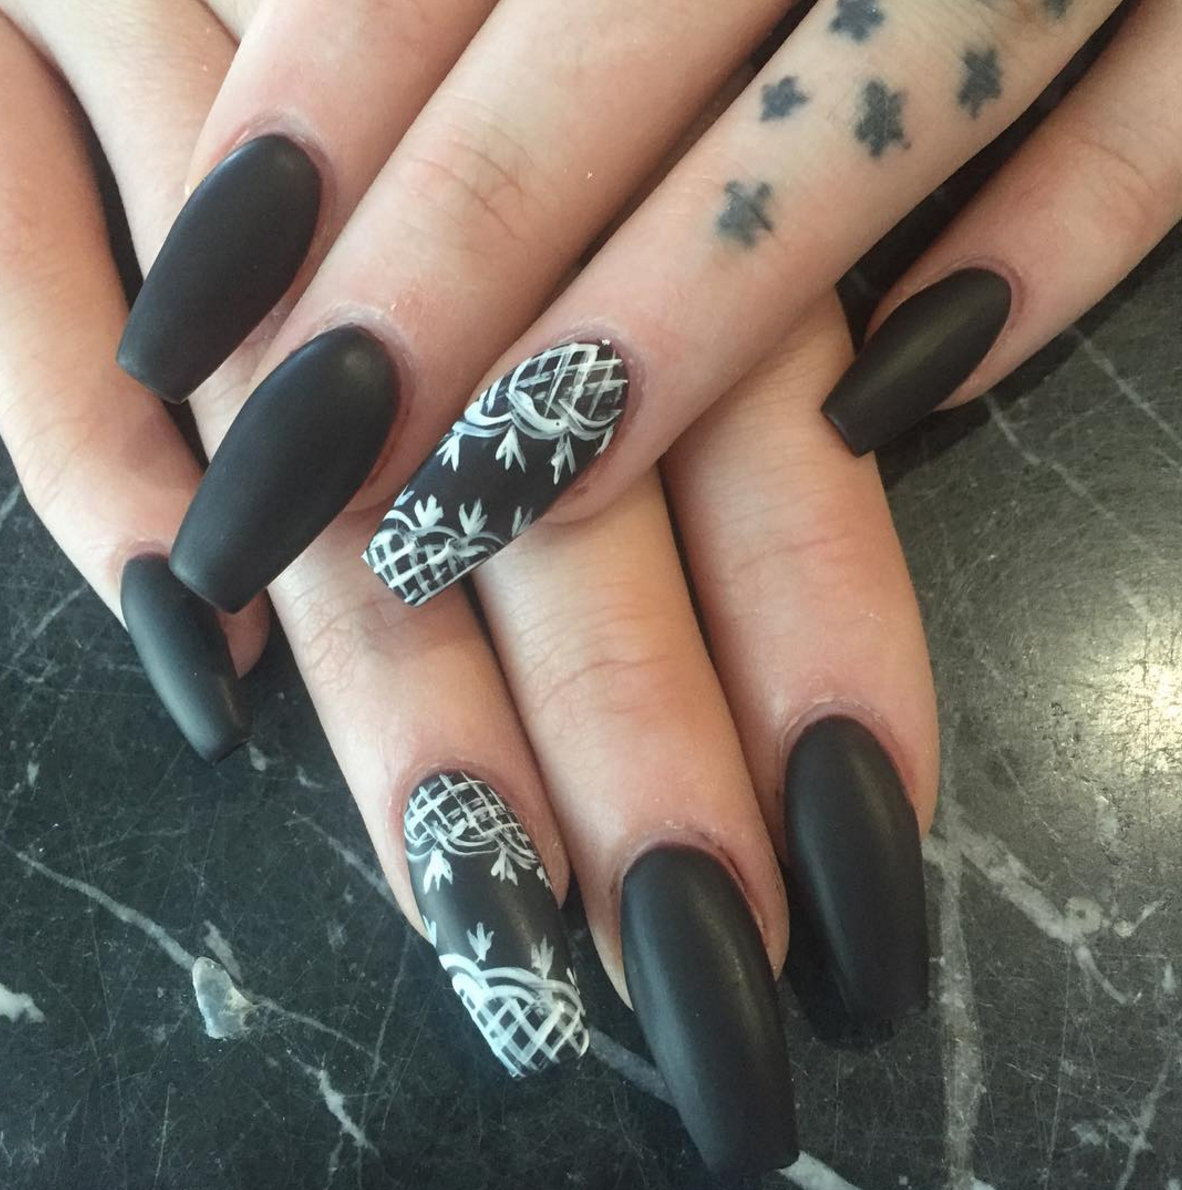 13 Ways to Wear Coffin Shaped Nails — Design Ideas for Ballerina Nails